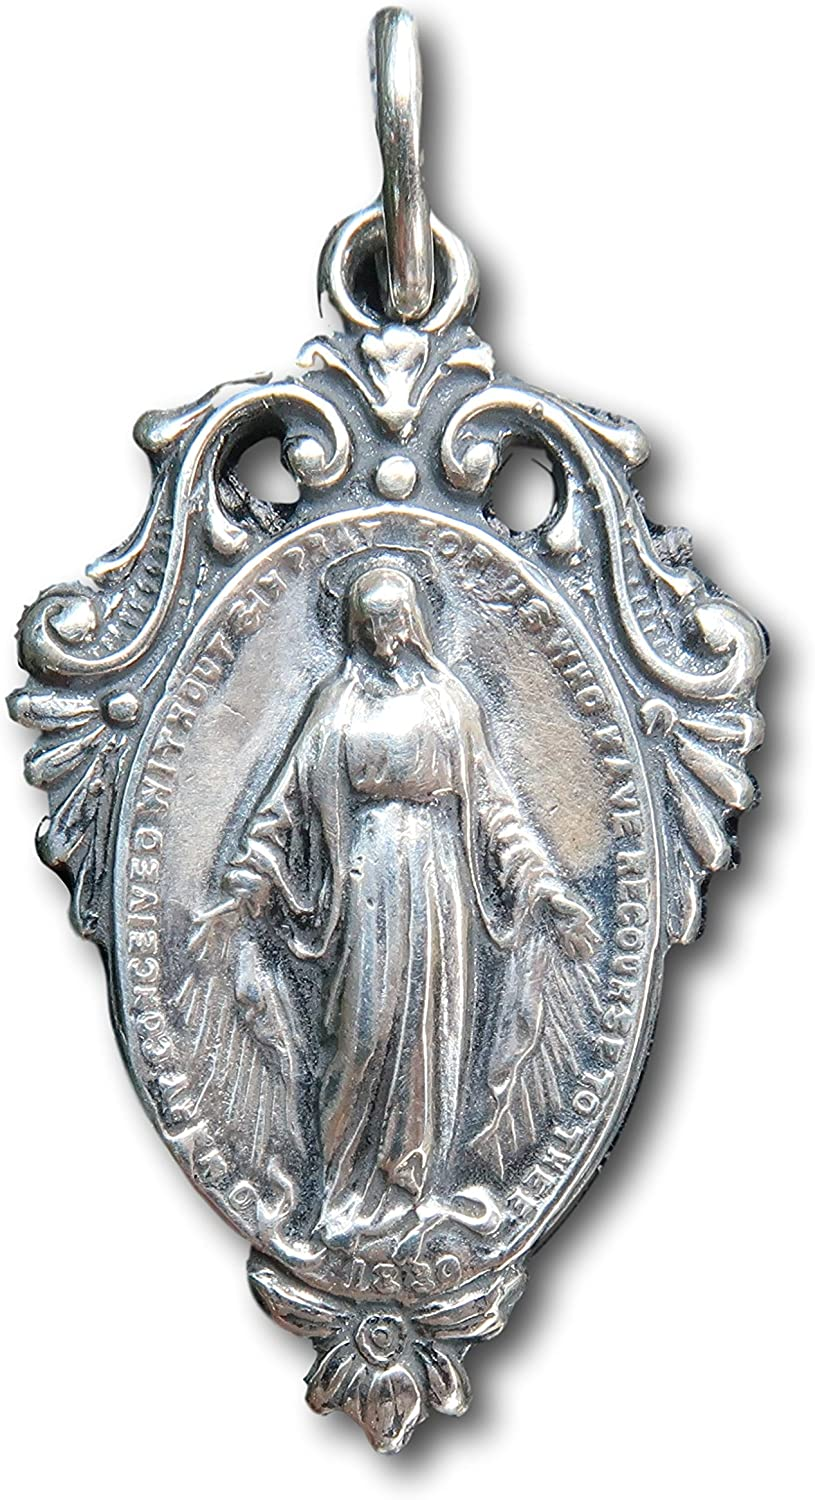 Miraculous Medal Virgin Mary Antique New San Diego Mall item Replica -